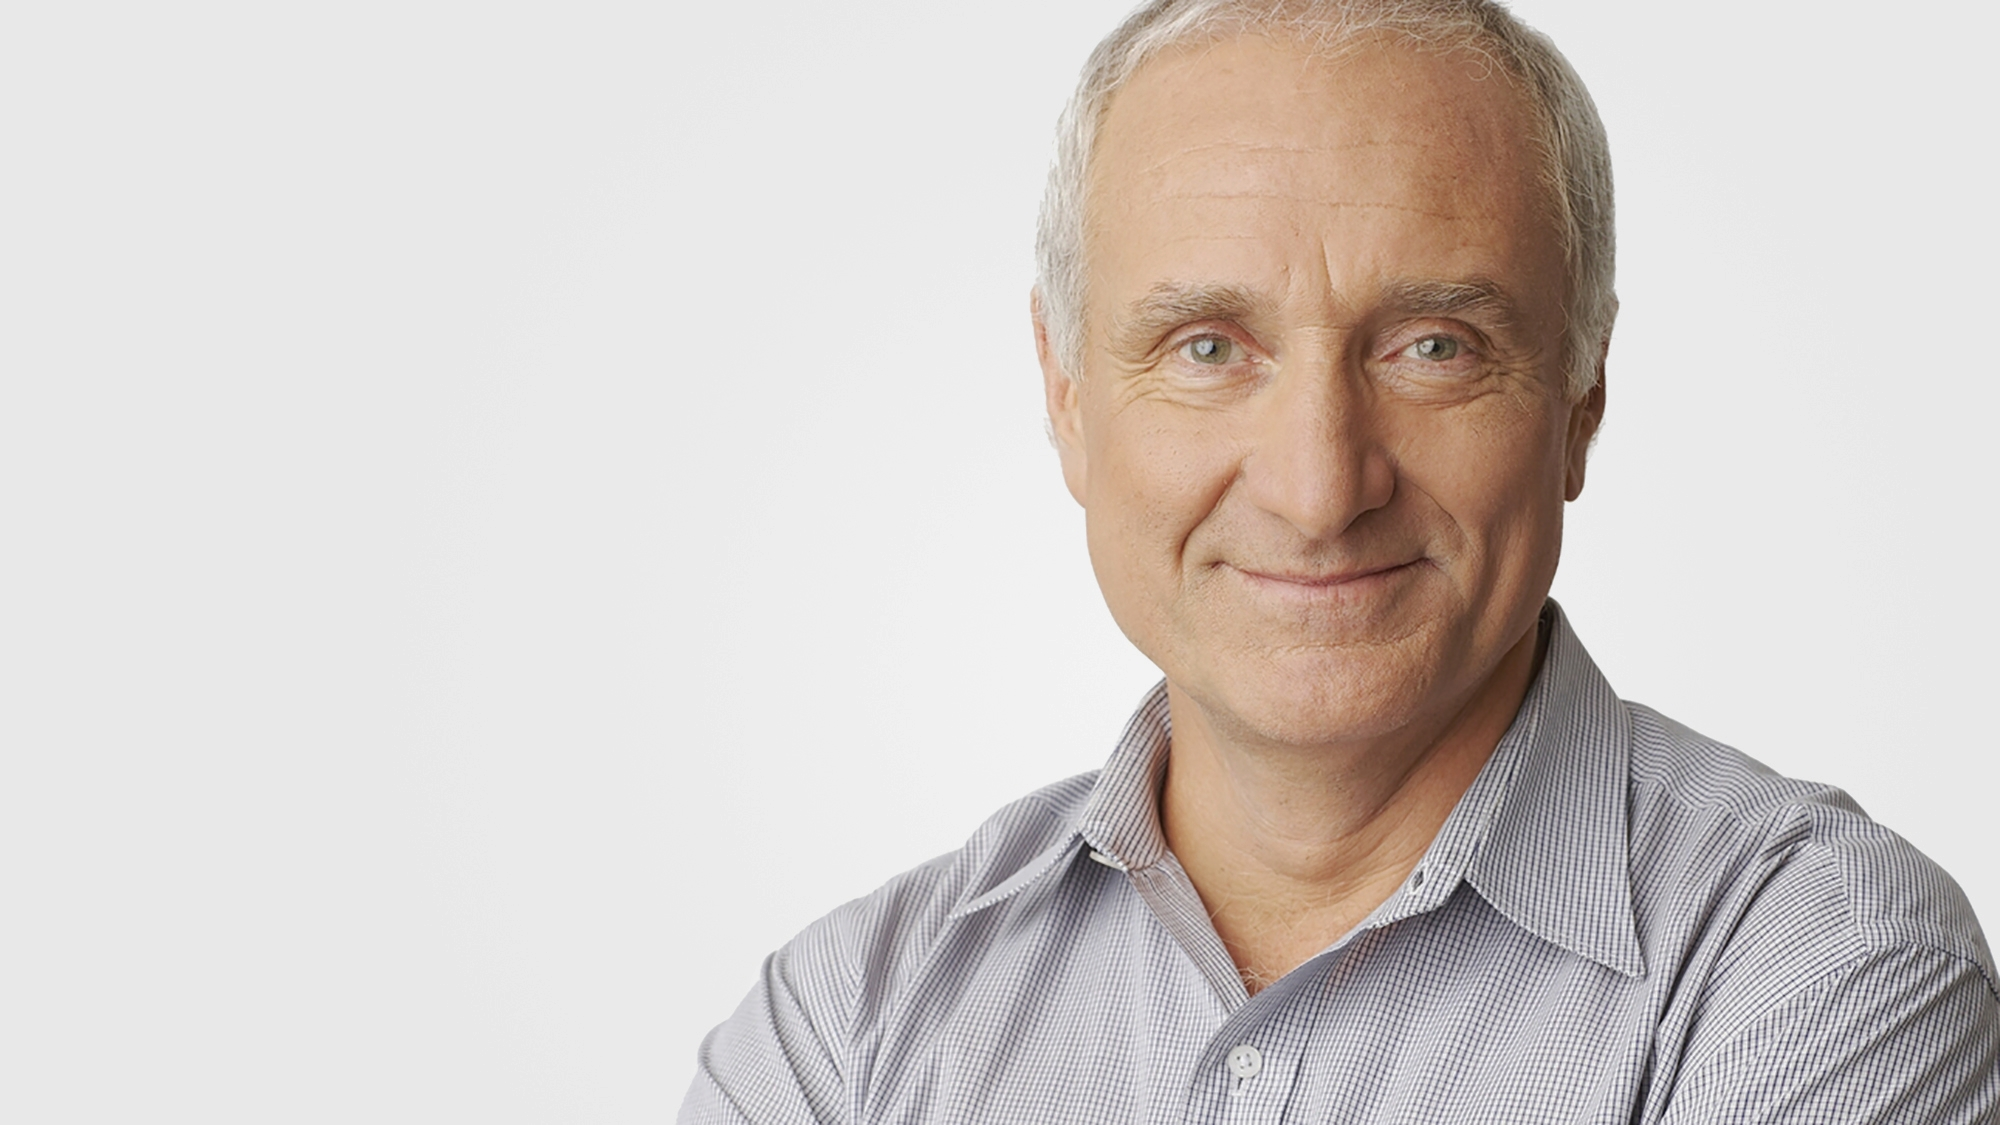 Robyn Williams - Science Journalist, Broadcaster